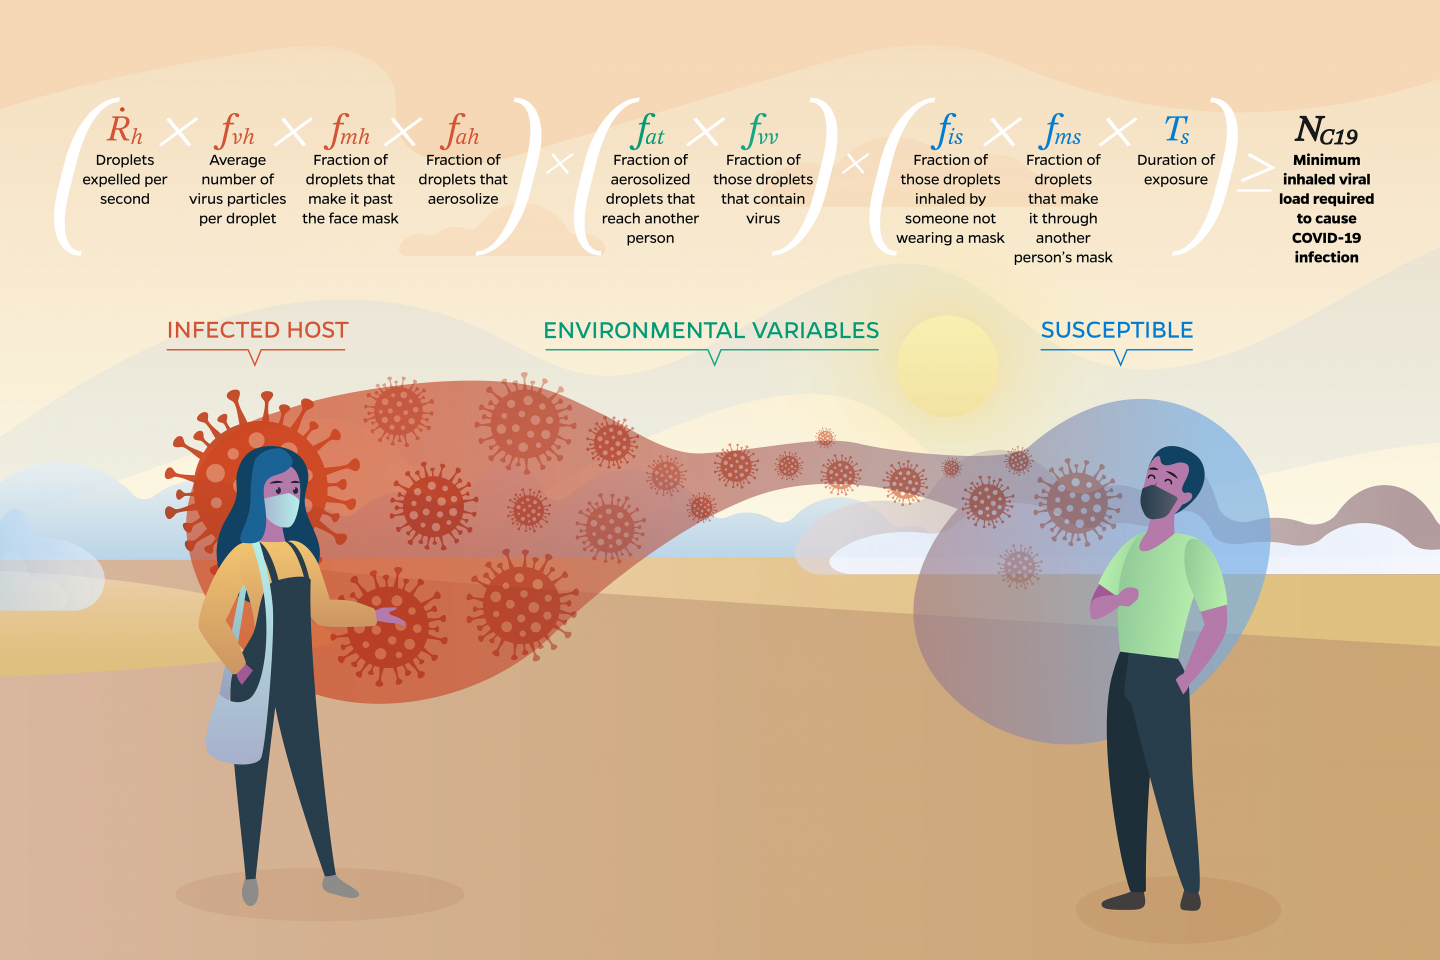 Infographic of CAT inequality shows an infected host and susceptible person